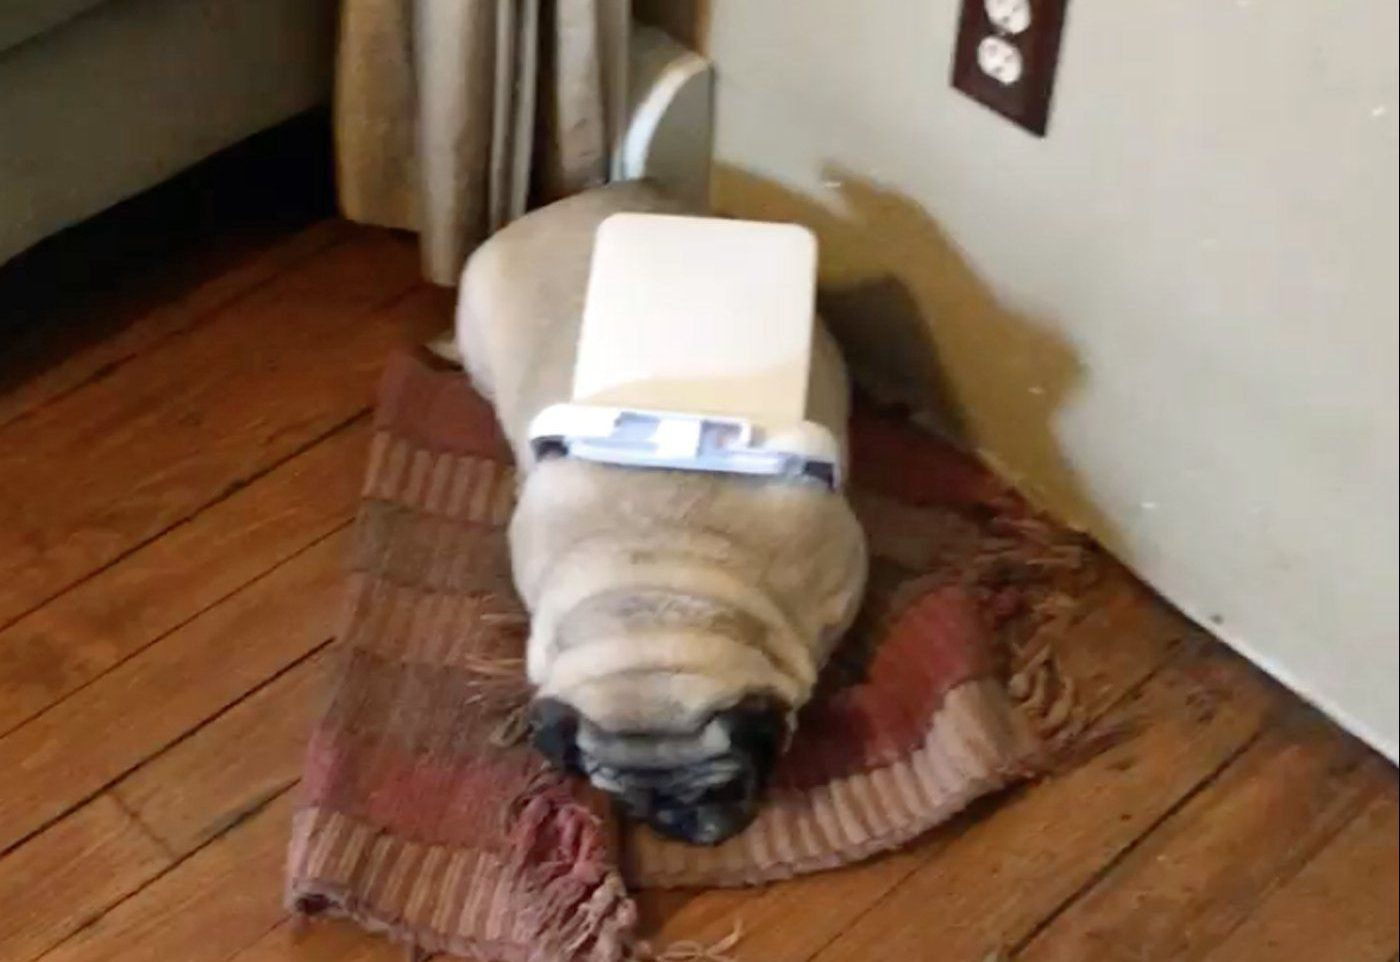 PIC BY JESSICA KOENIG / CATERS NEWS - (PICTURED: After being caught by her owners with the bin lid stuck around her body, Clementine the pug cant look them in the face as the guilt of the destruction she has made in the bathroom is too much.) - This is the hilarious moment a guilty pug stuck in a bin lid is caught after leaving a huge bathroom mess. When cheeky Clementine was found with her midriff trapped by the white plastic cover, she couldnt bear to look into the eyes of her owners. Returning home, Jessica Koenig and her partner were shocked to be faced with an overturned bin and toilet paper and rubbish left strewn past their toilet. With the lid wrapped around her body, the eight-year-old pooch was the clear suspect and can only roll onto her side when asked: What did you do? - SEE CATERS COPY